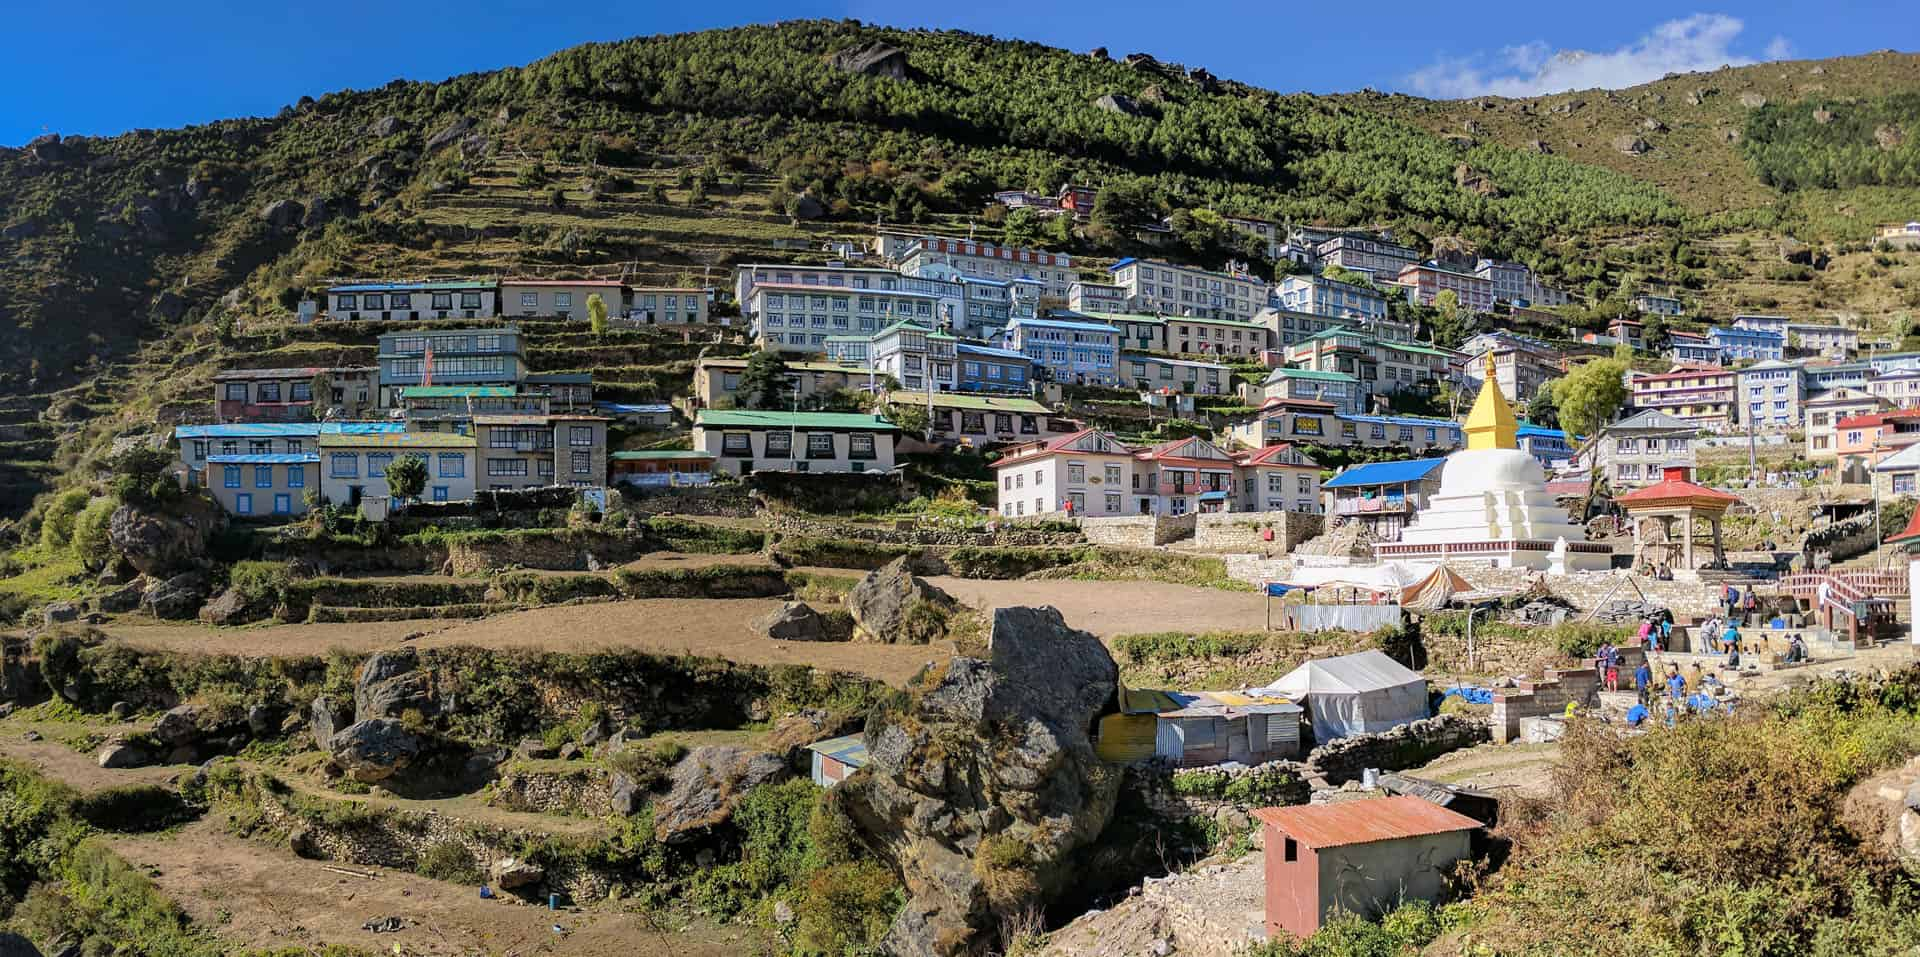 Panorama of Namche